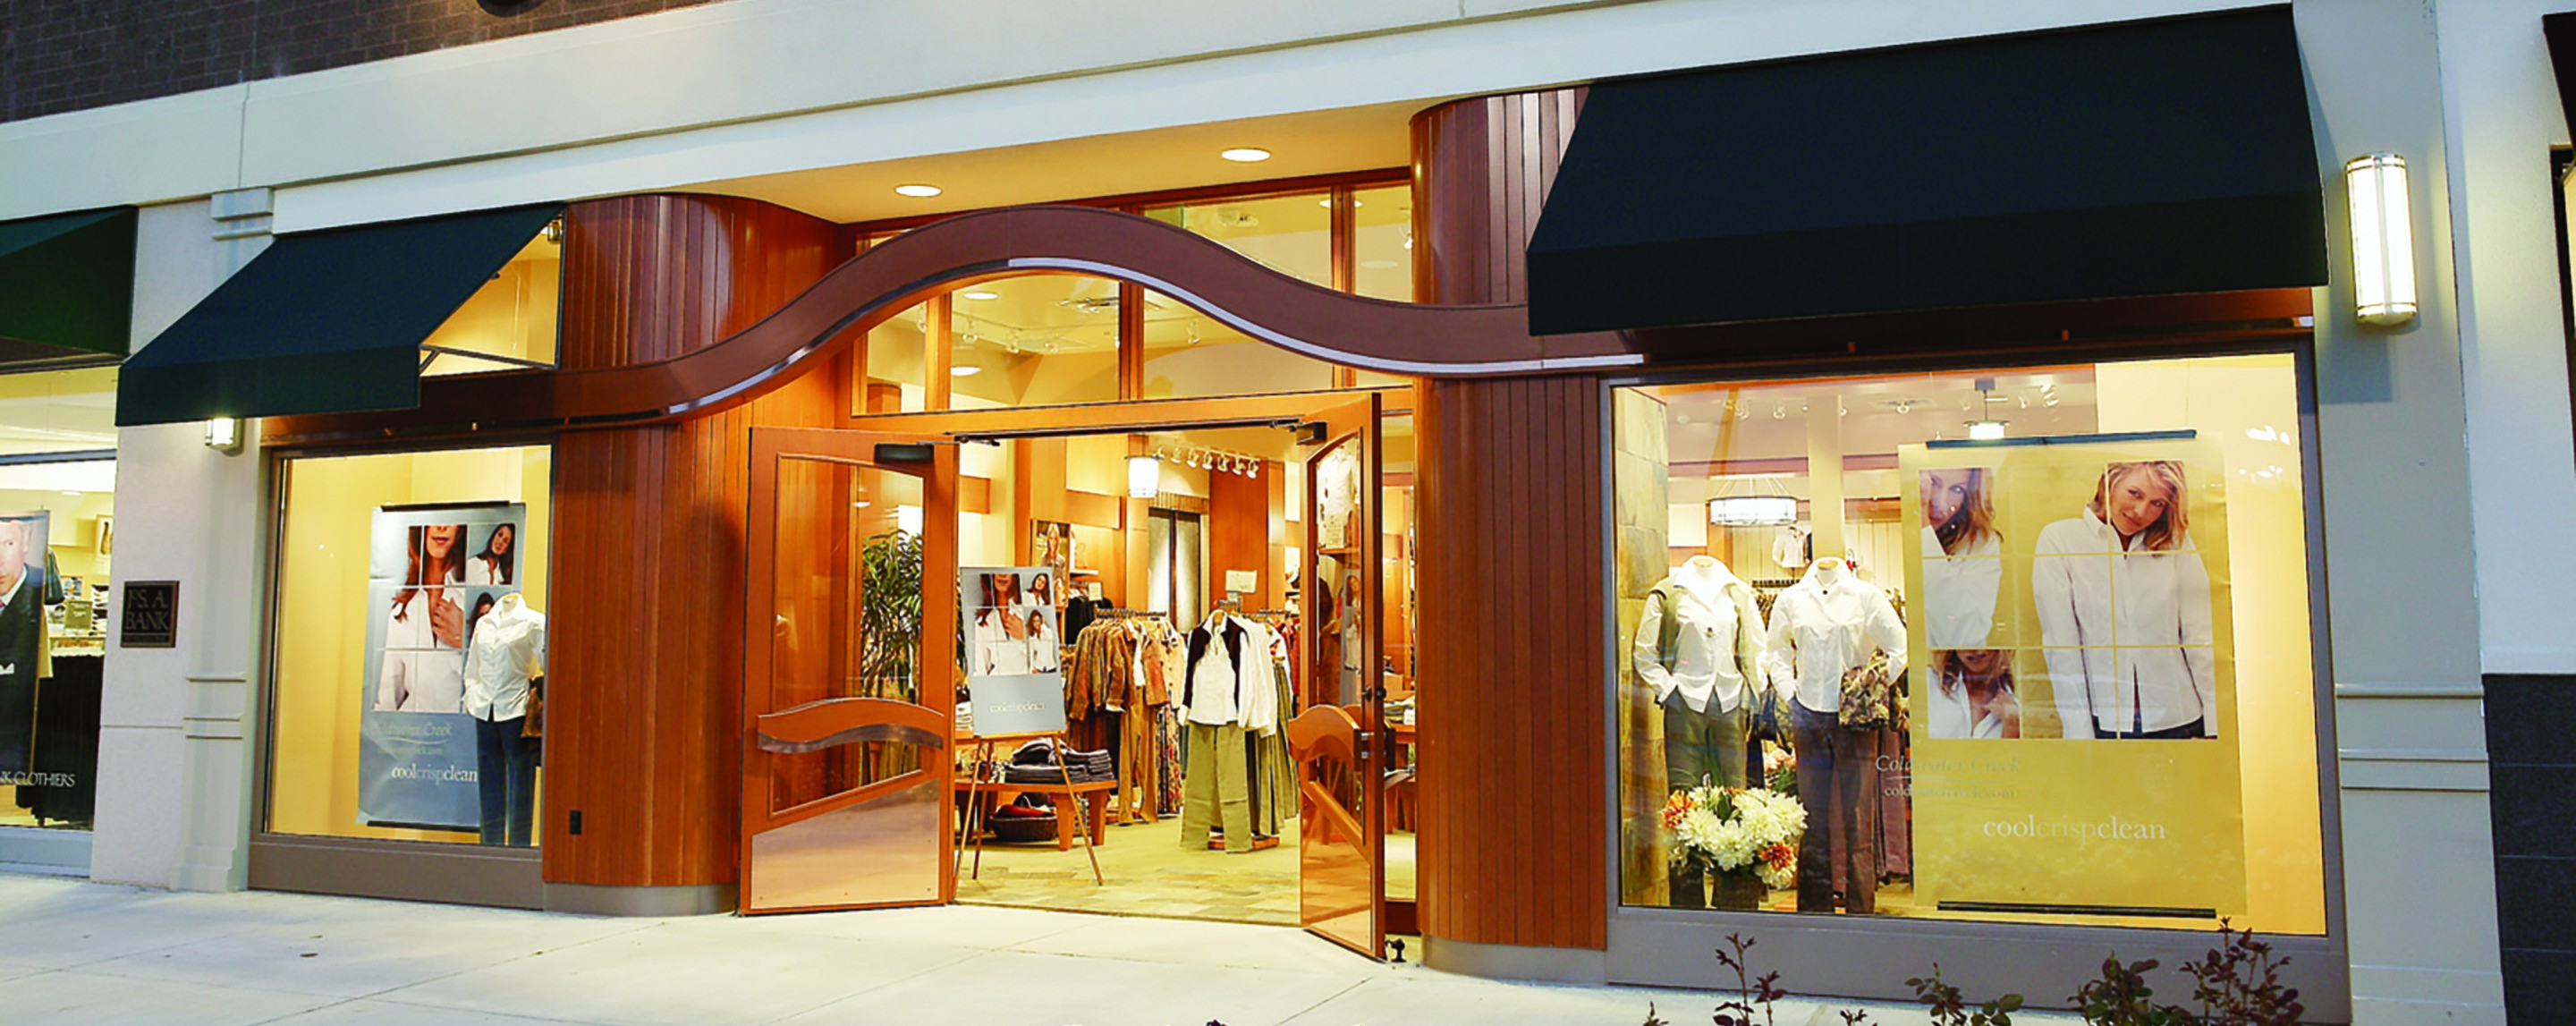 From the outside of Columbia Mall, you can see the open doors to a retail store with sample clothing and photos on display.